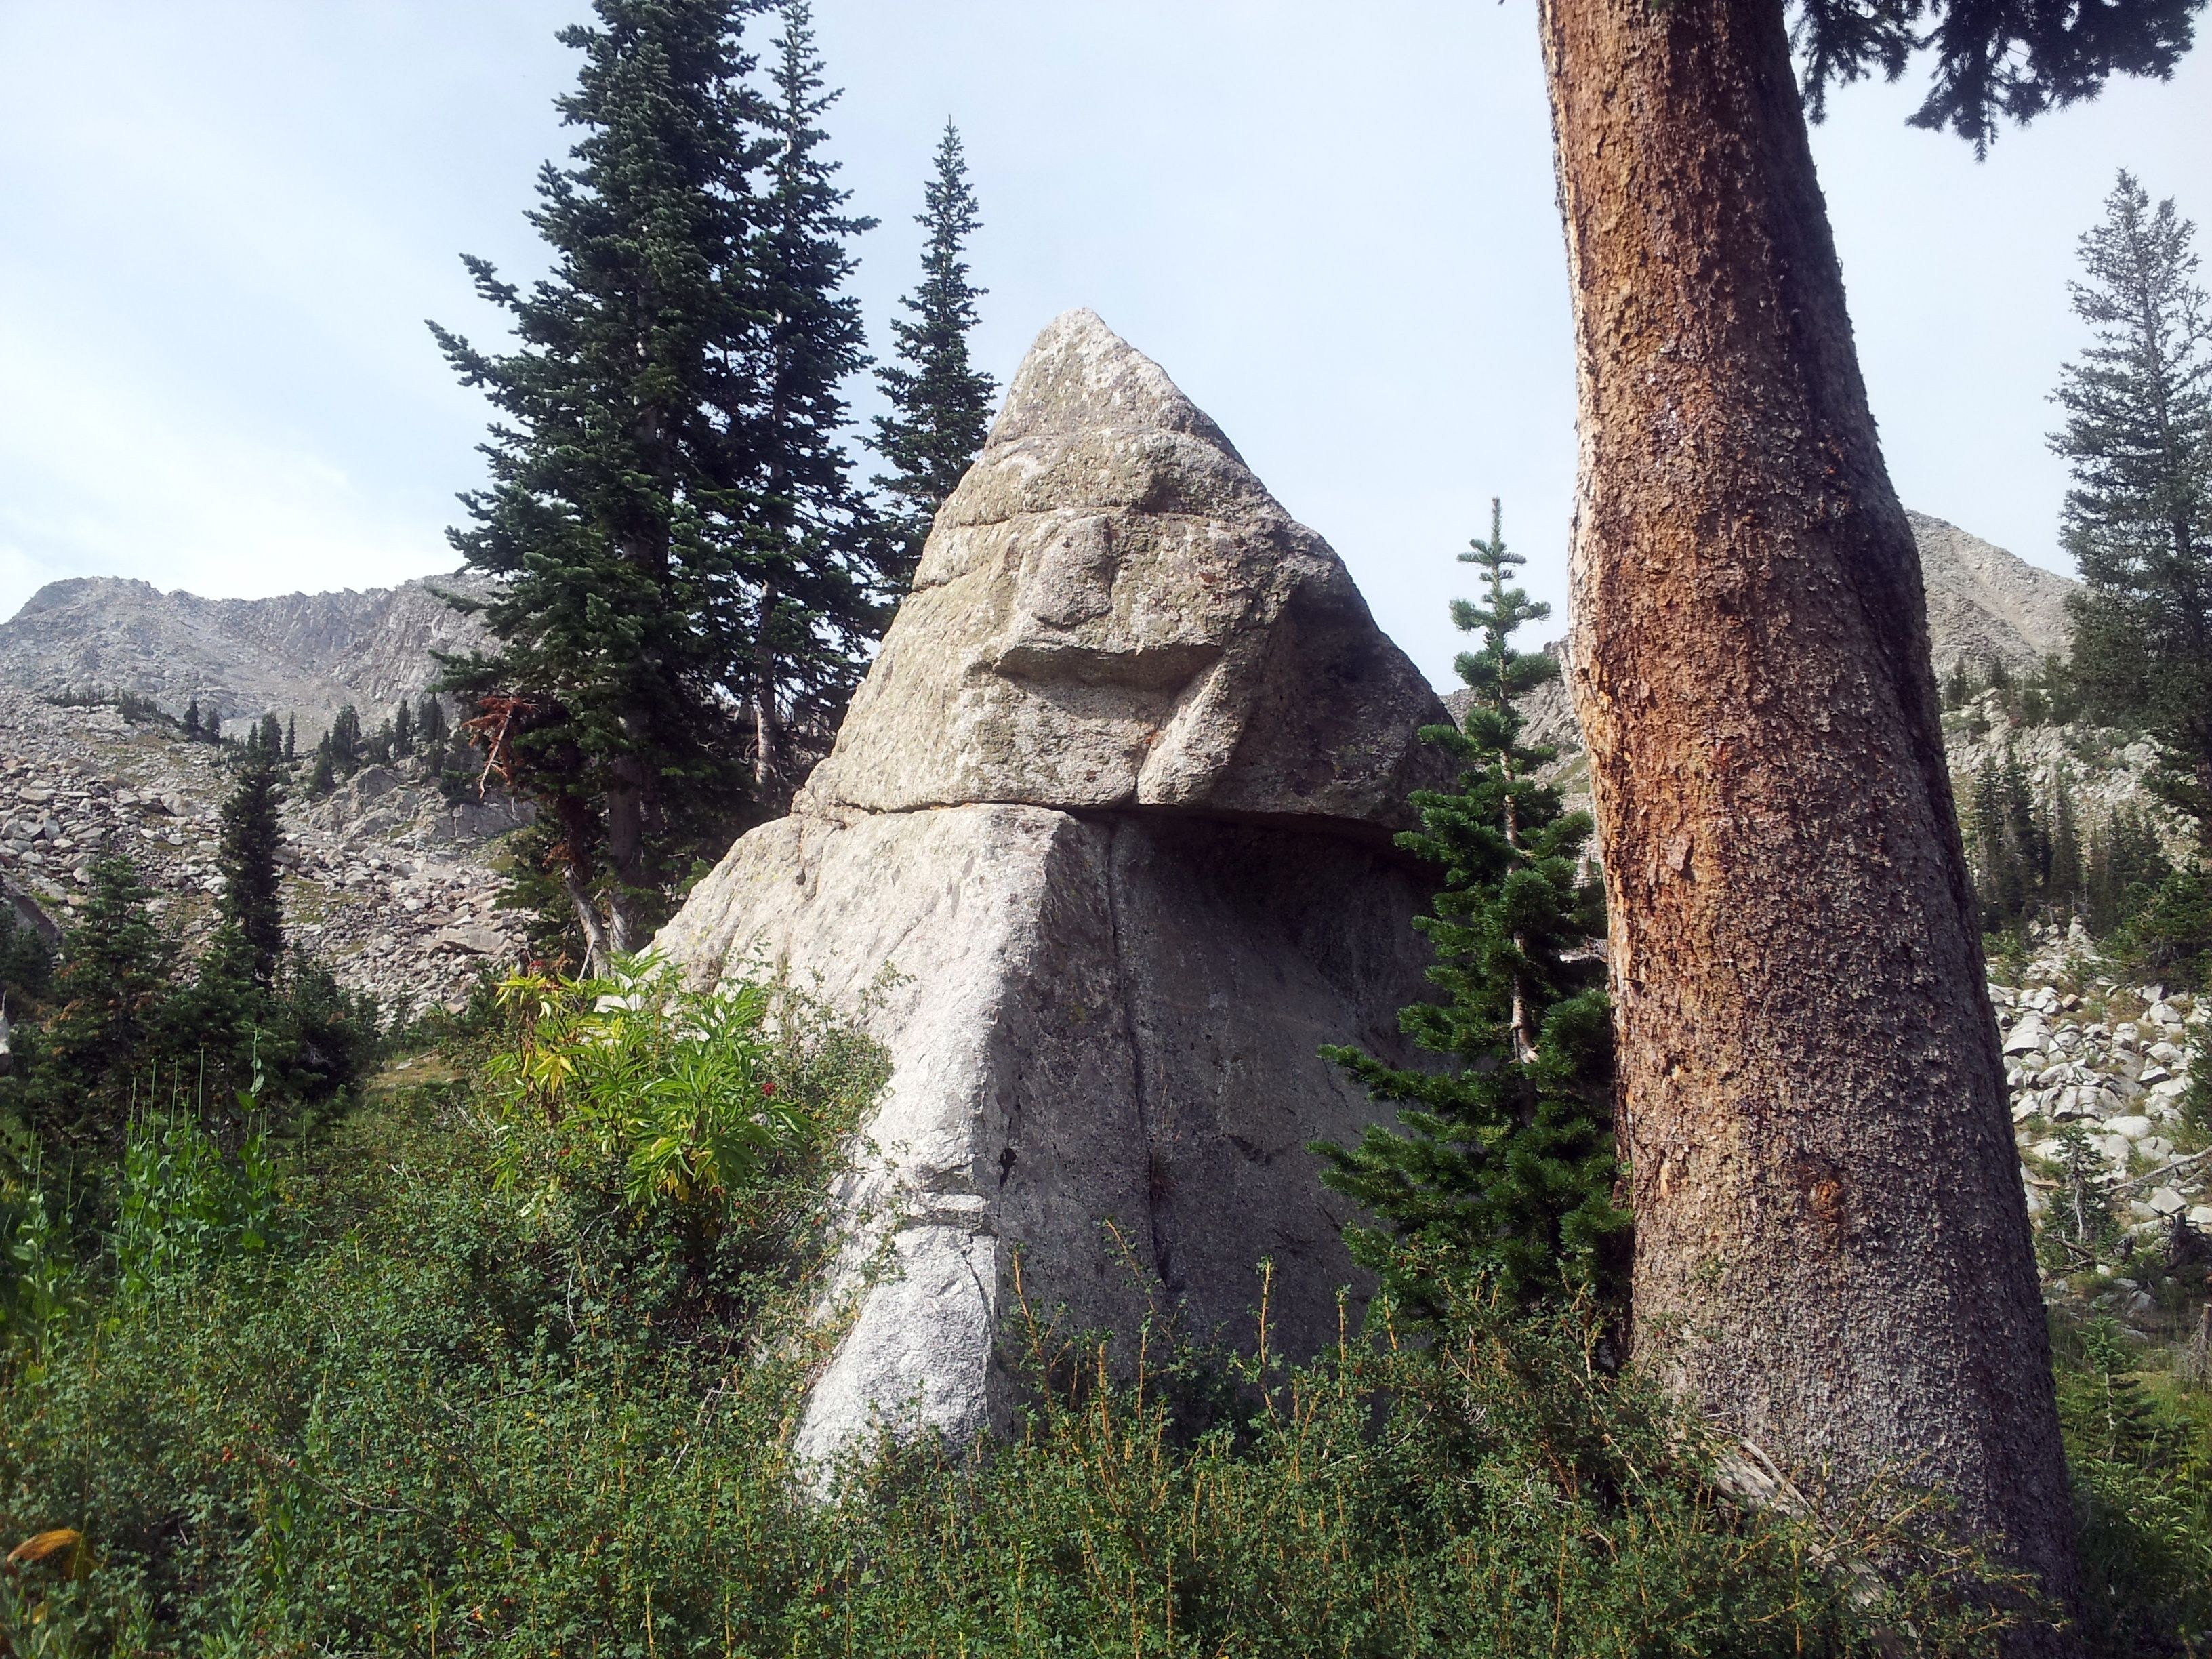 Smiling stone sentinel along White Pine Lake trail. Photo by Dru White.